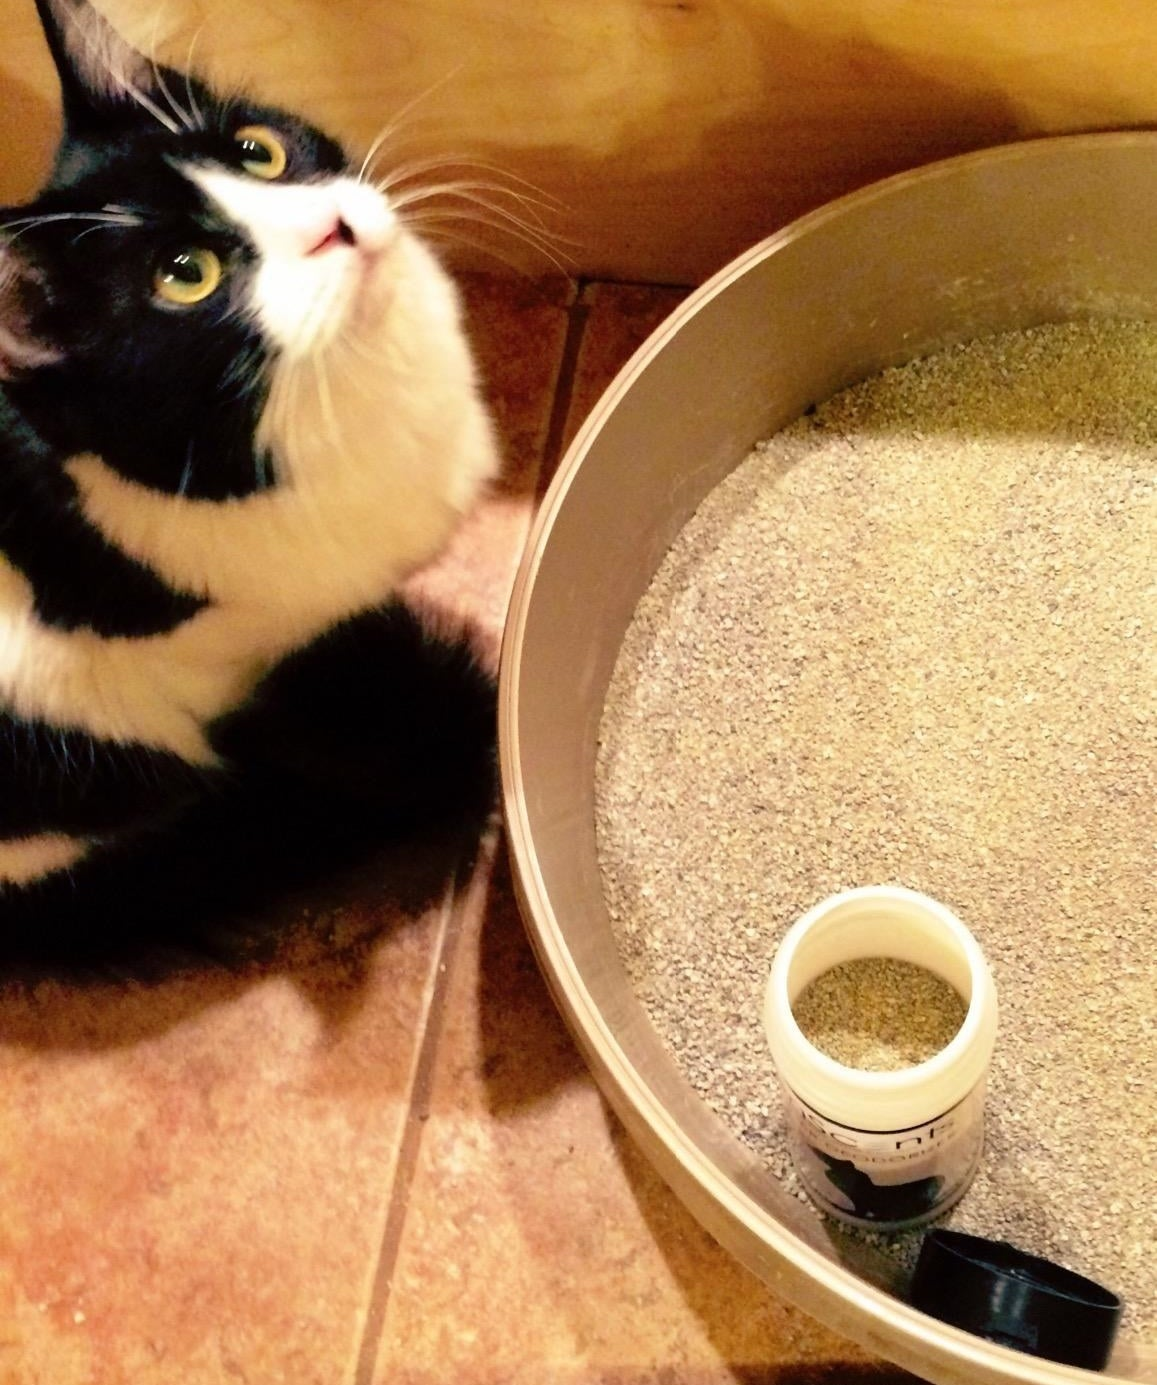 A reviewer photo of a cat looking up next to a litter box with a bottle of odor destroyer in it